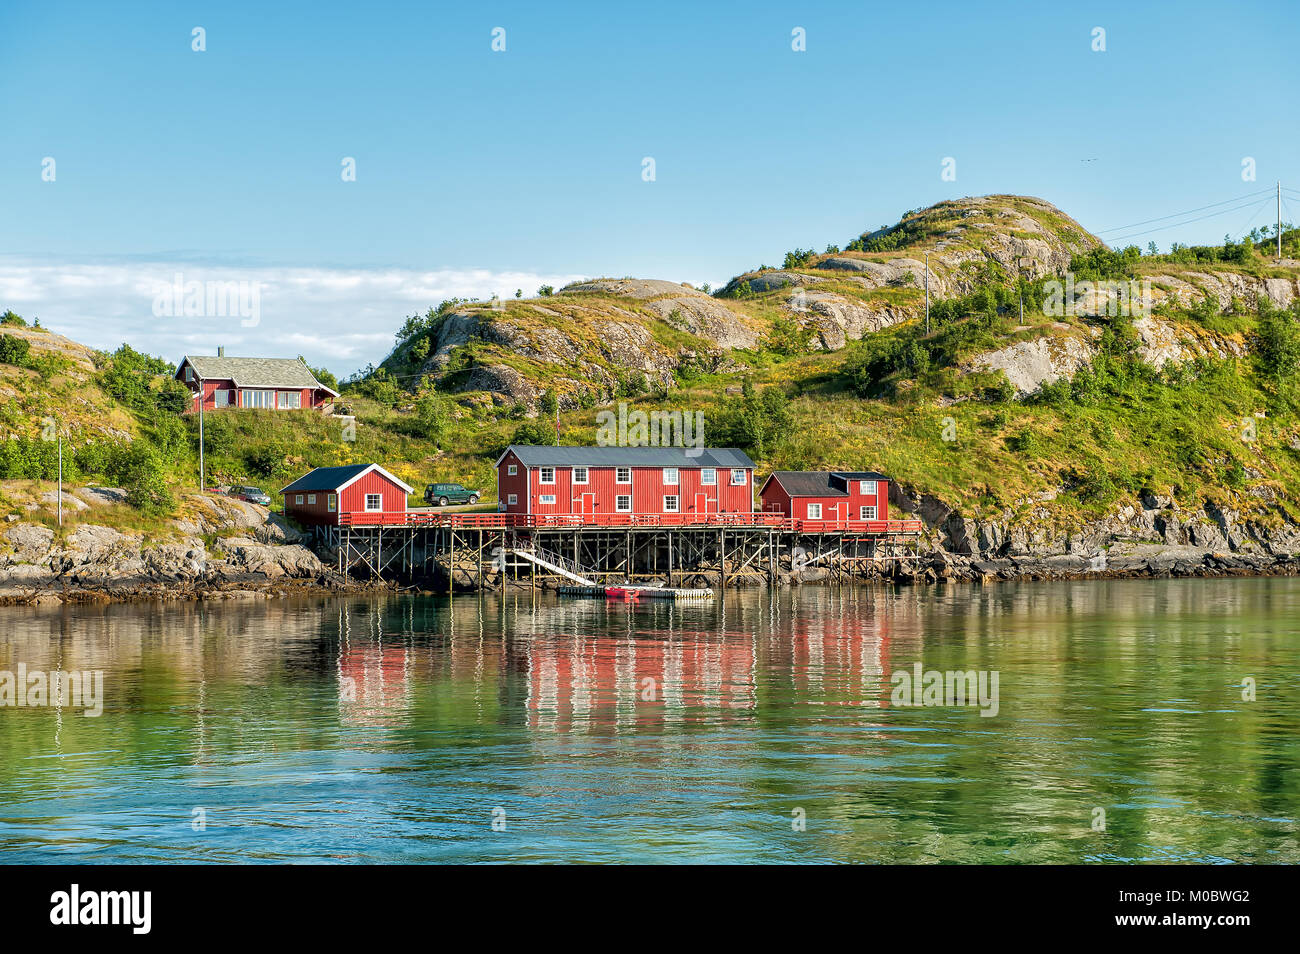 Traditional rural buildings in coast landscape on Lofoten islands in northern Norway. Lofoten is a popular tourist - Stock Image